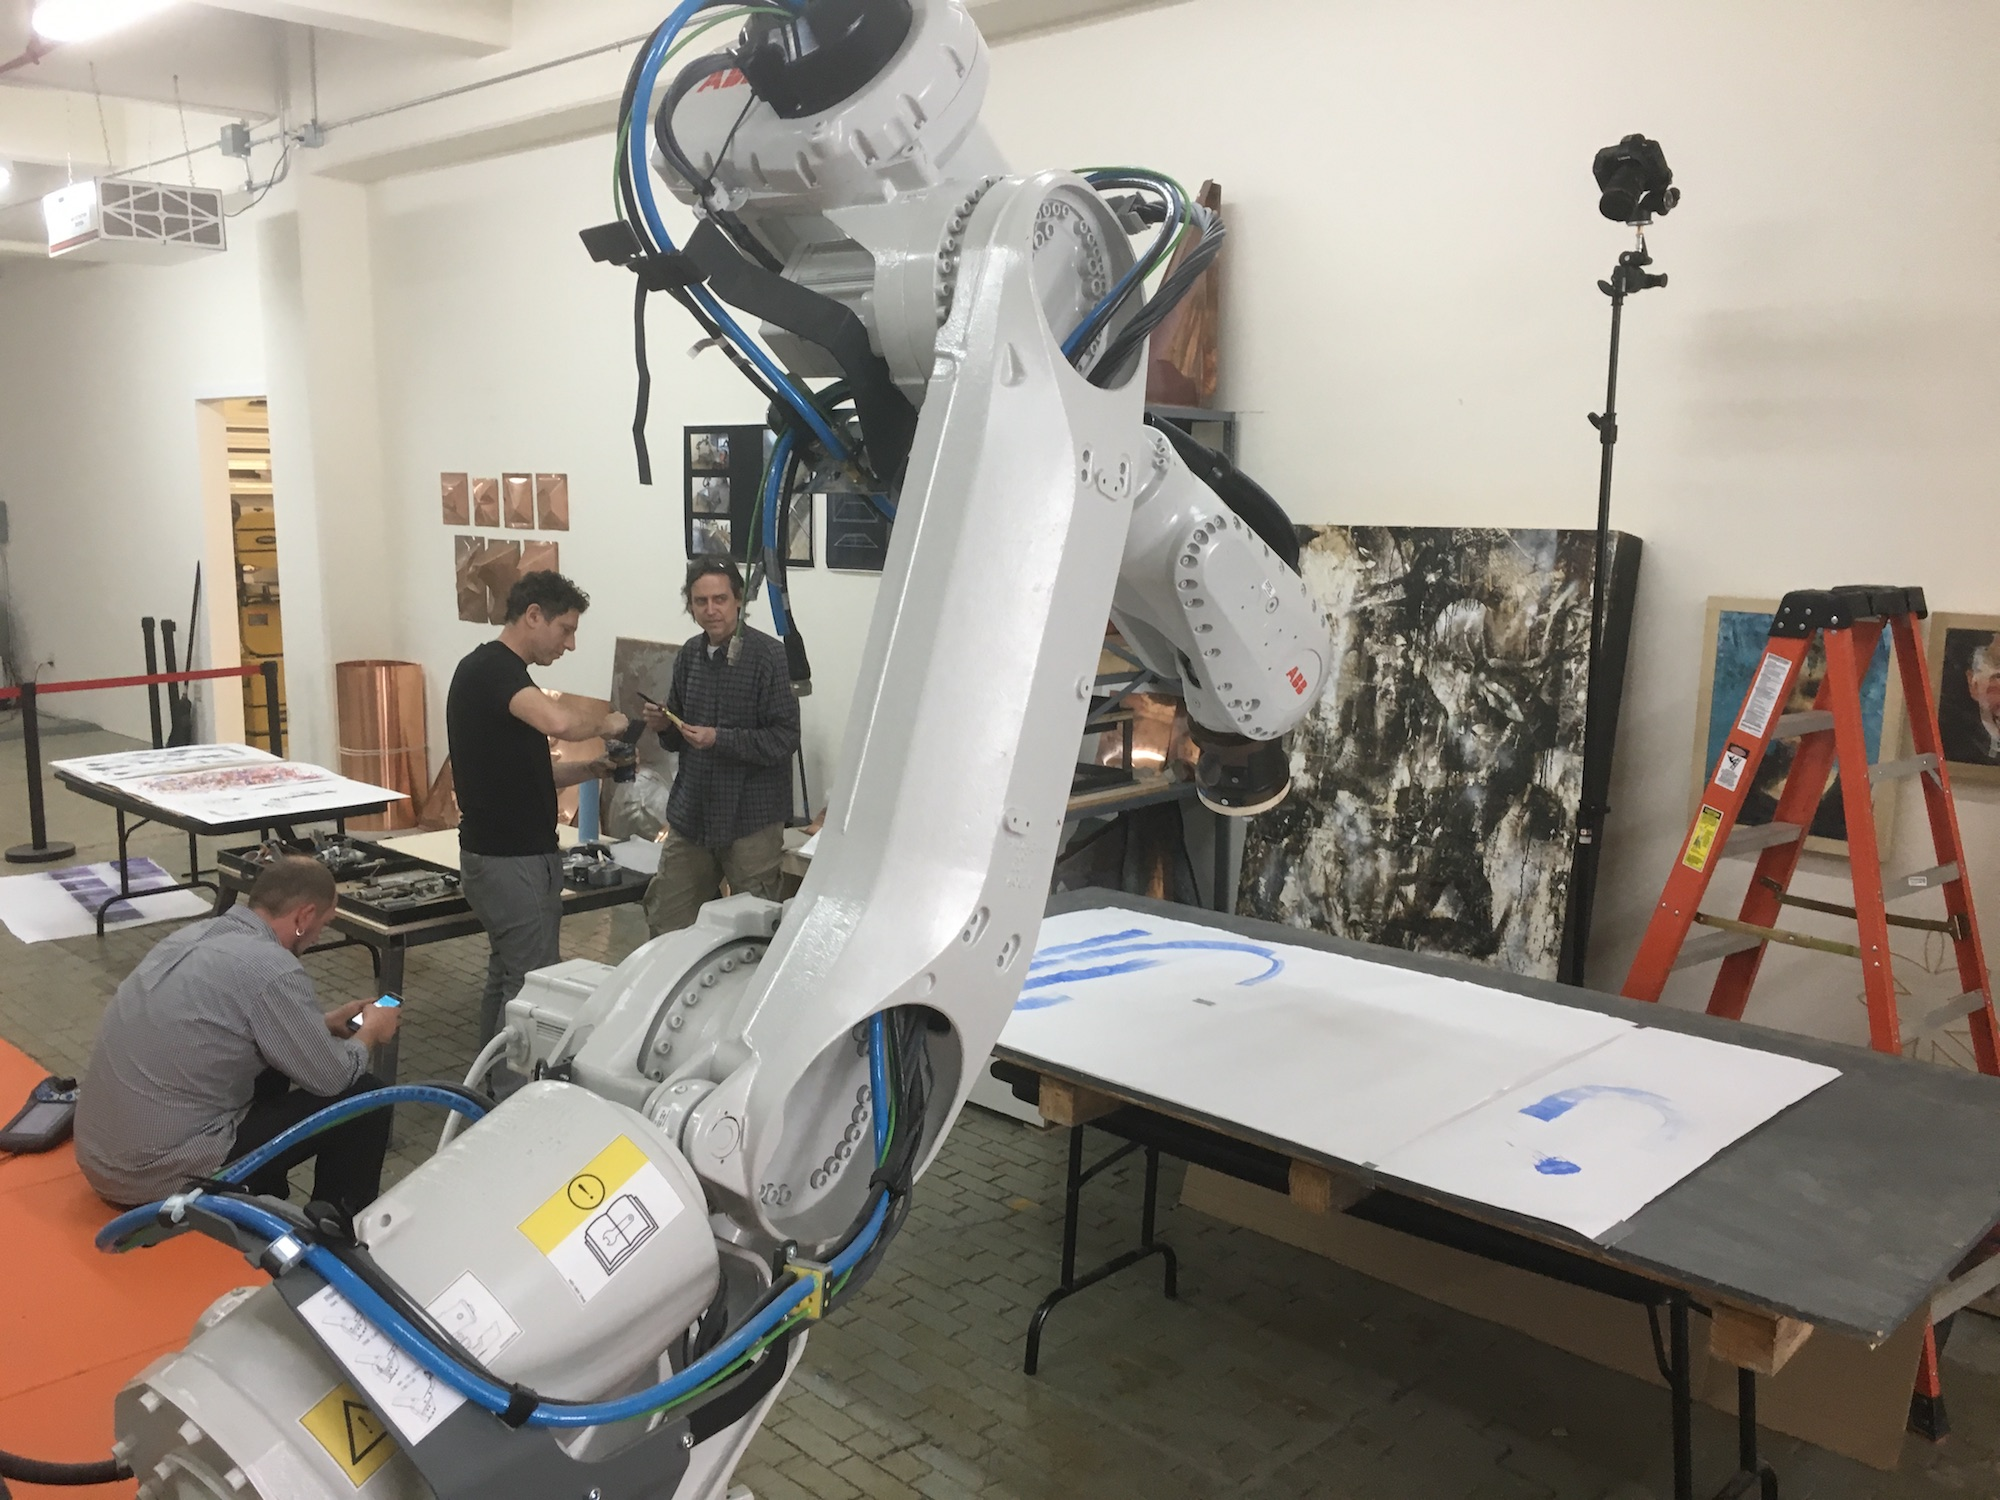 Artmatr creating robotic art at CRR